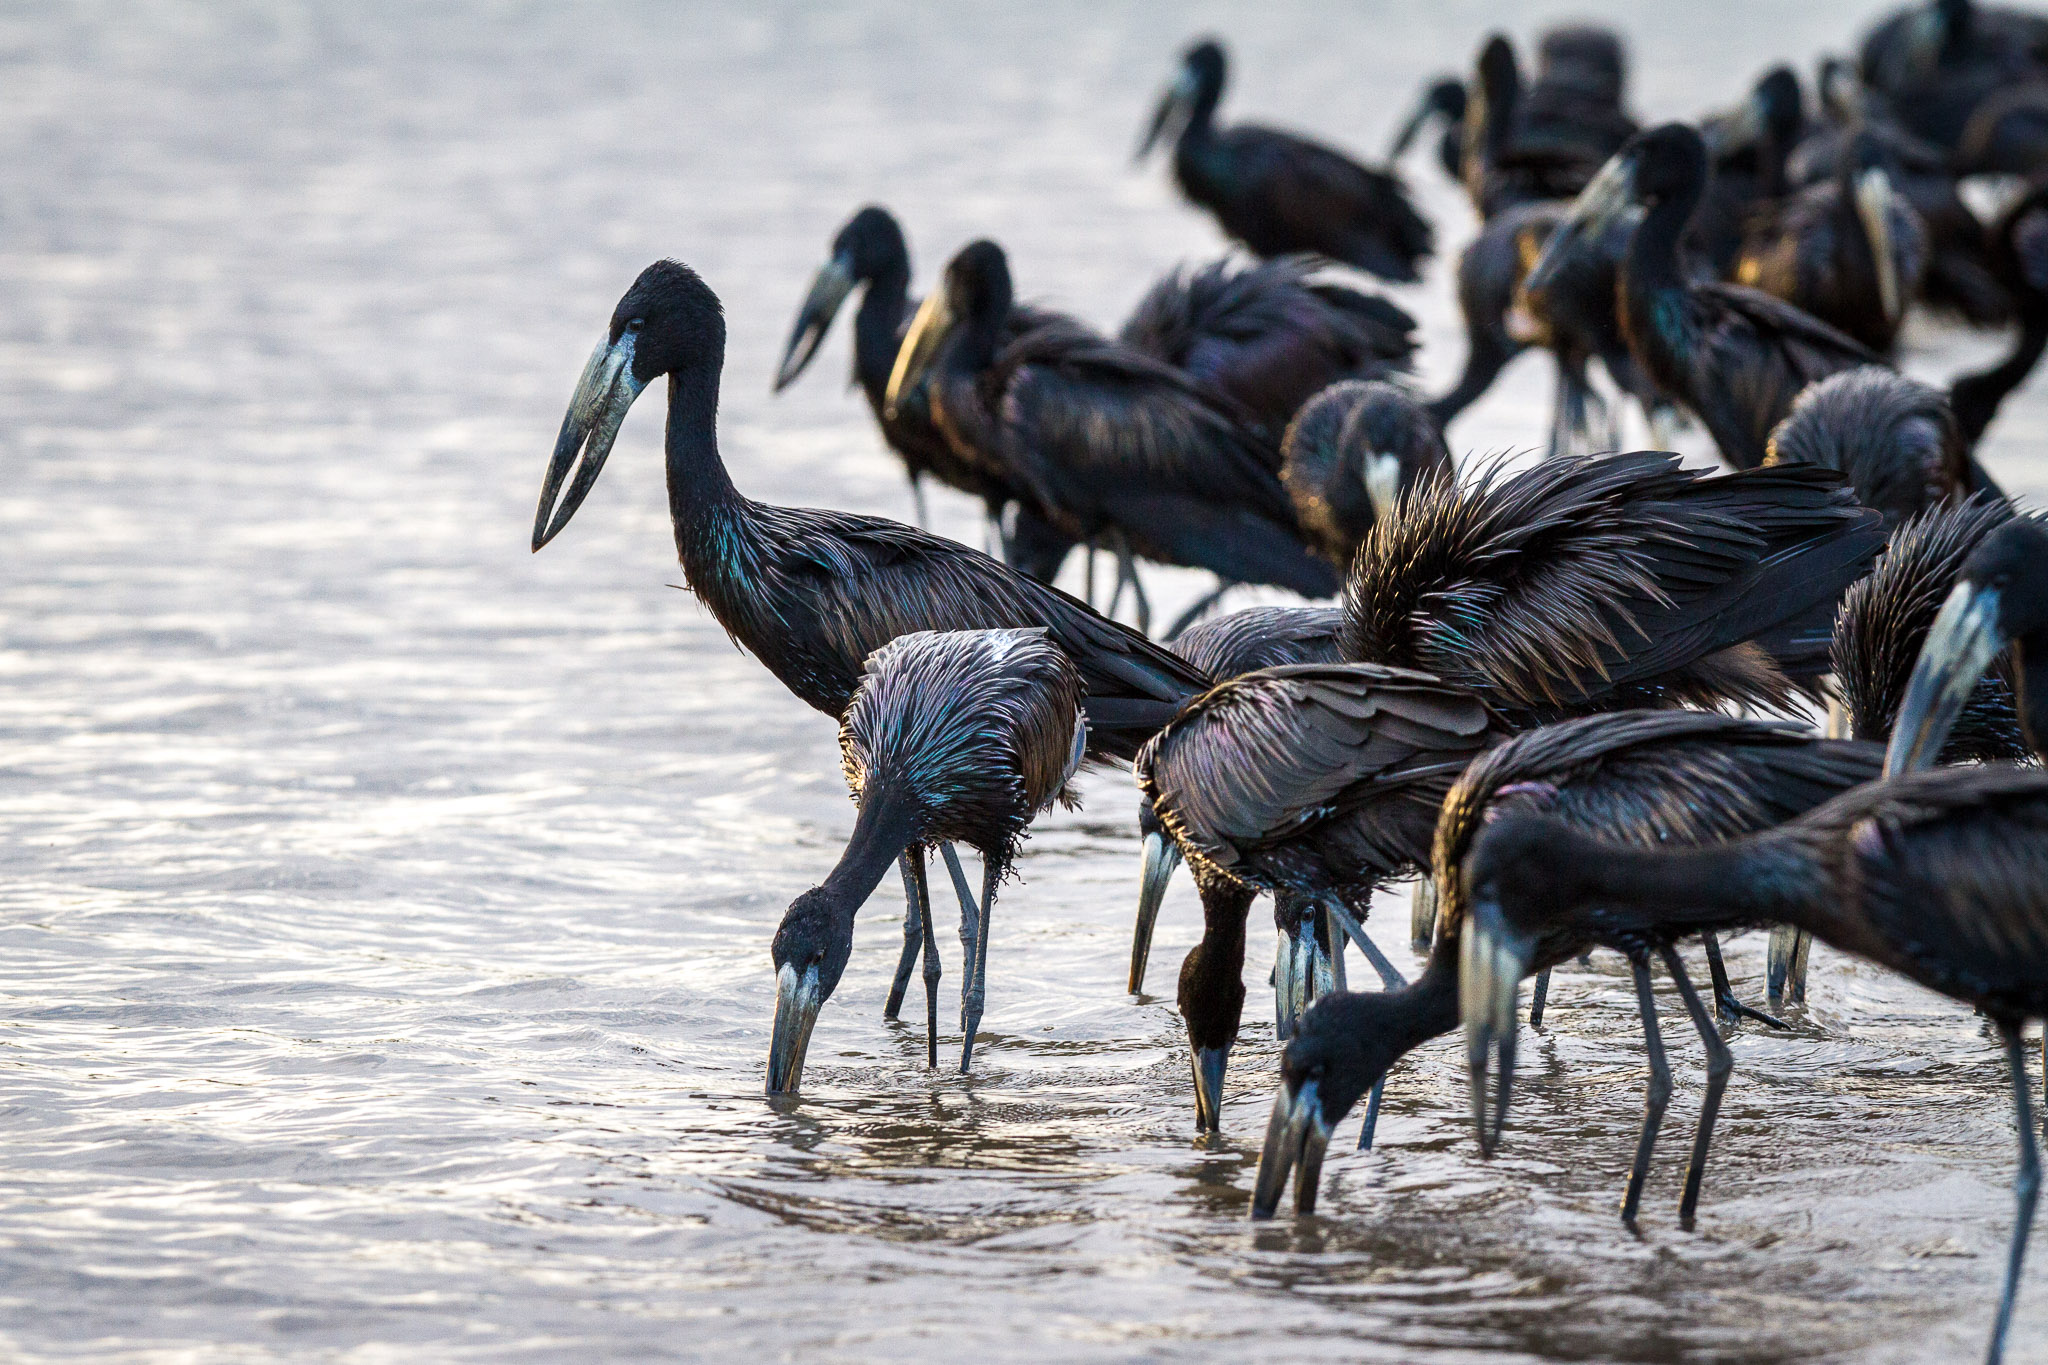 Openbill storks wading in water